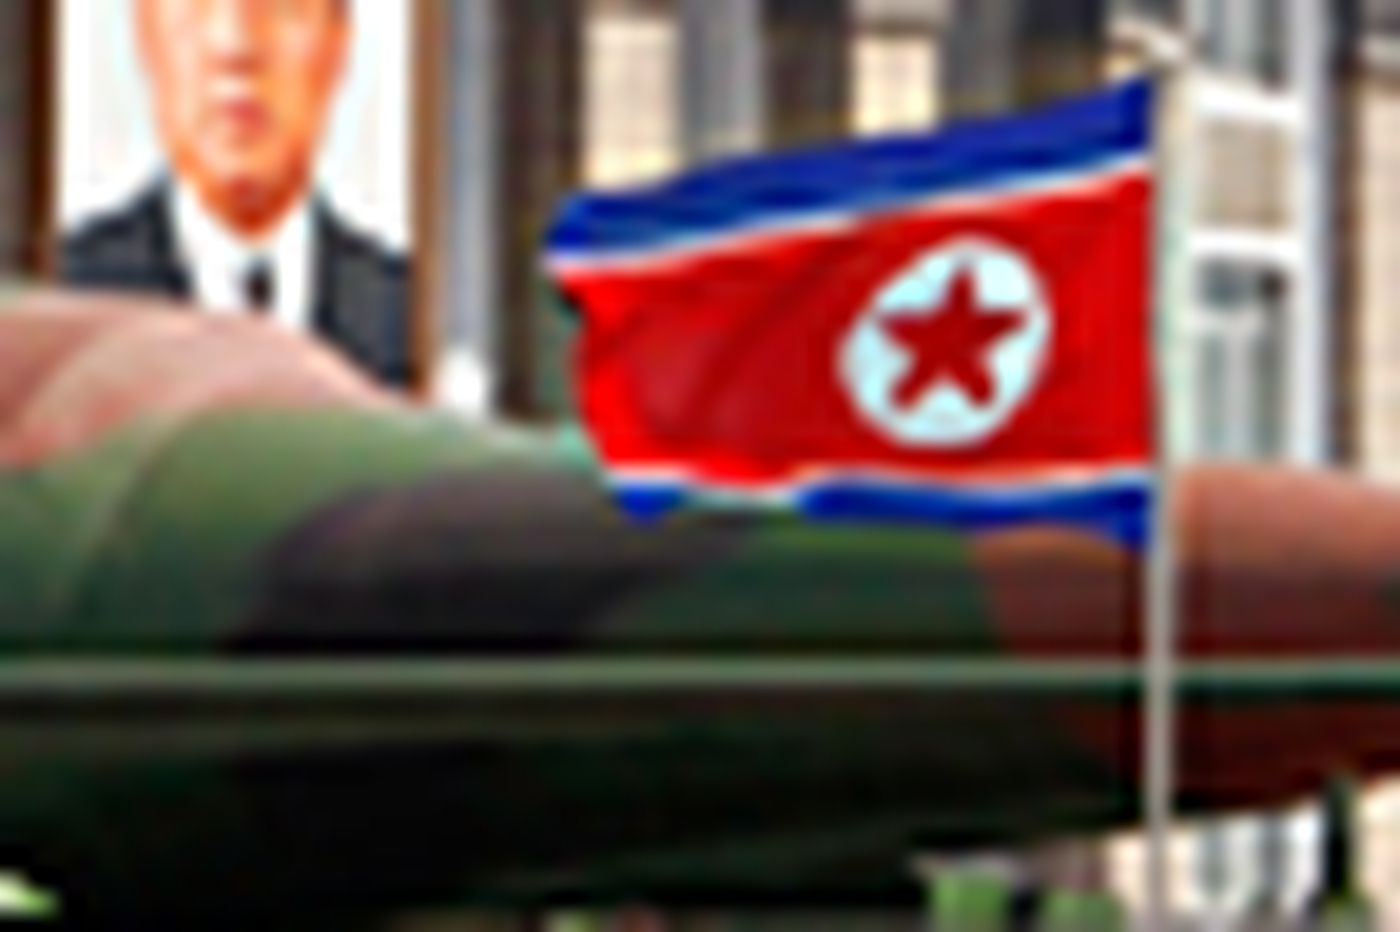 N. Korea's new missiles are fakes